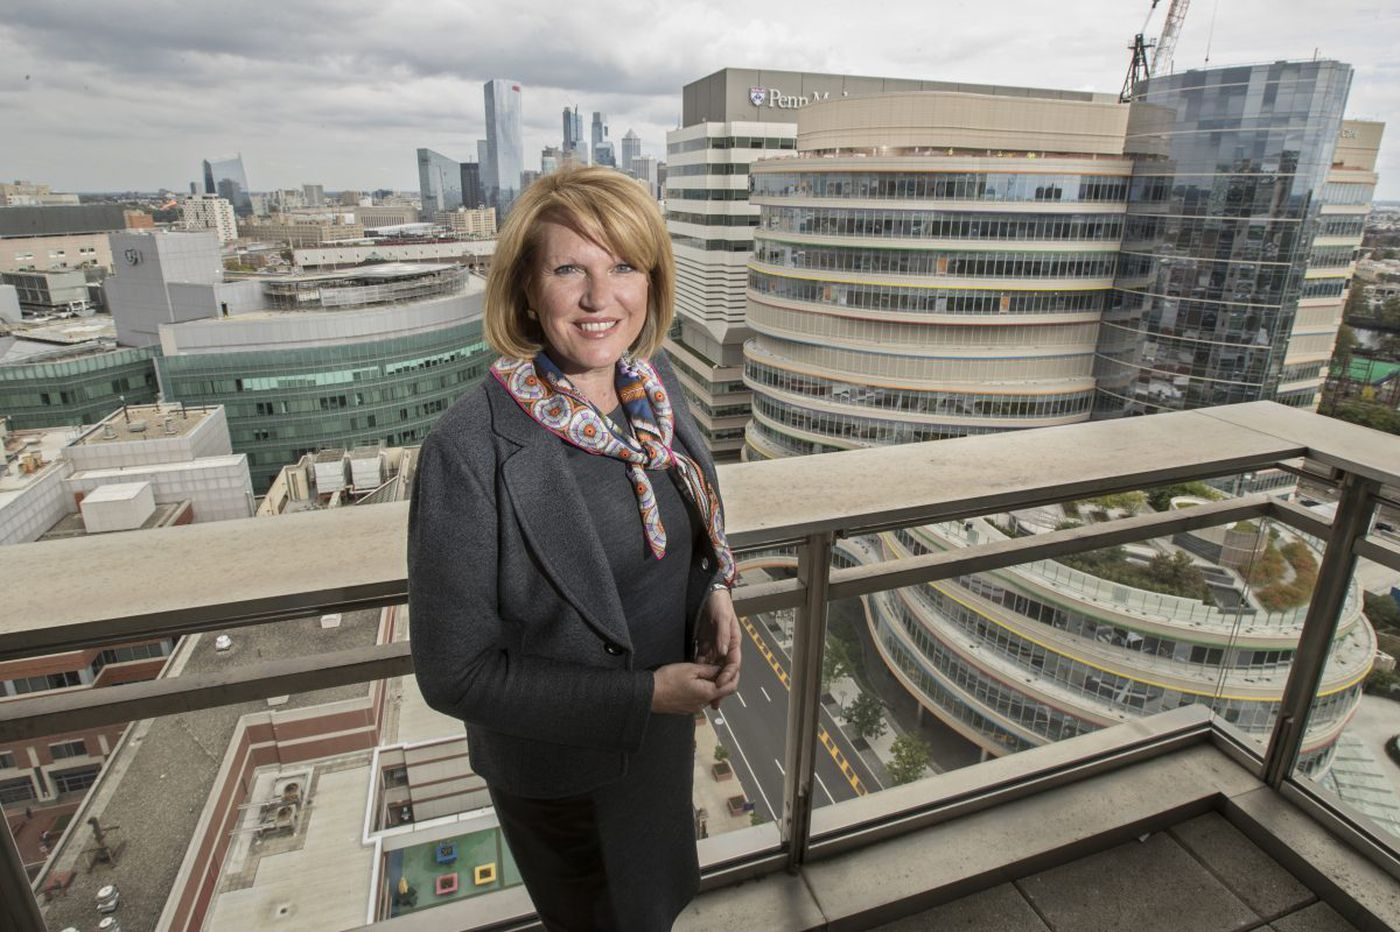 ICON: For Children's Hospital of Philadelphia CEO, success means always raising the bar